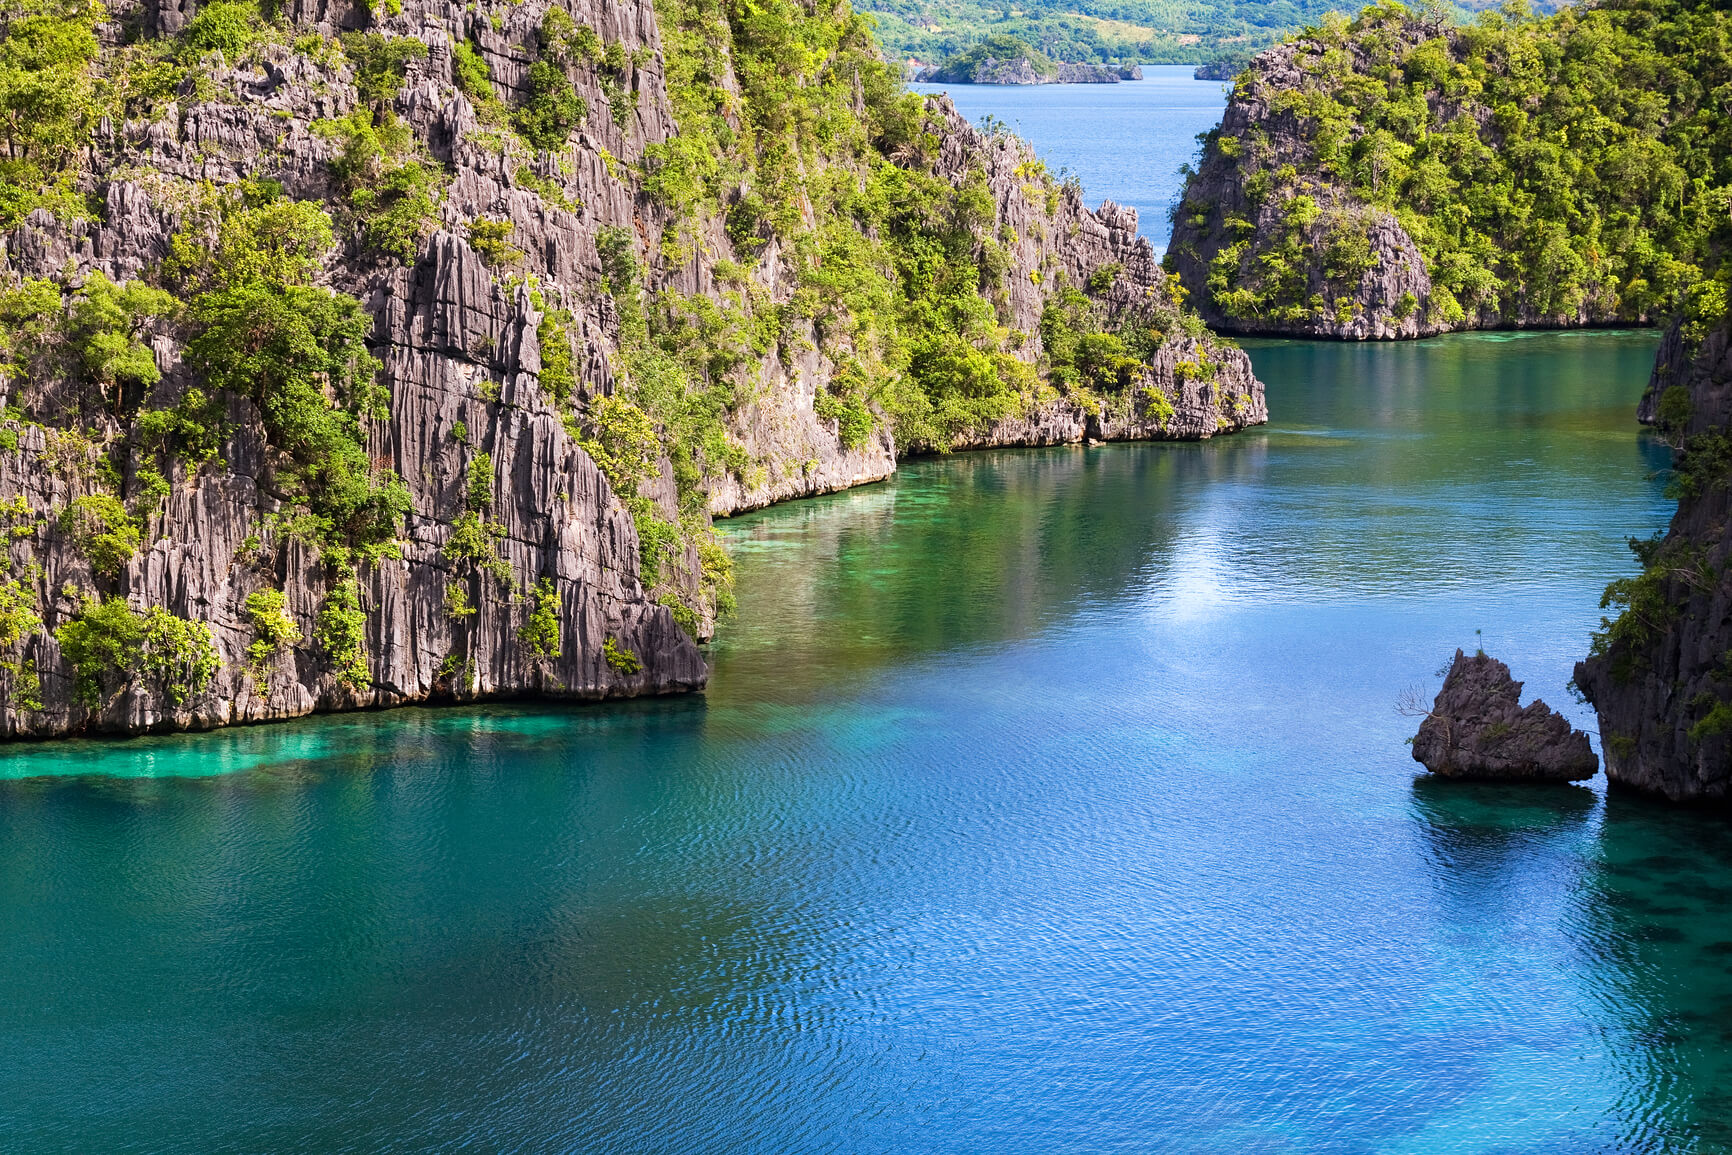 Paris, France to Manila, Philippines for only €325 roundtrip